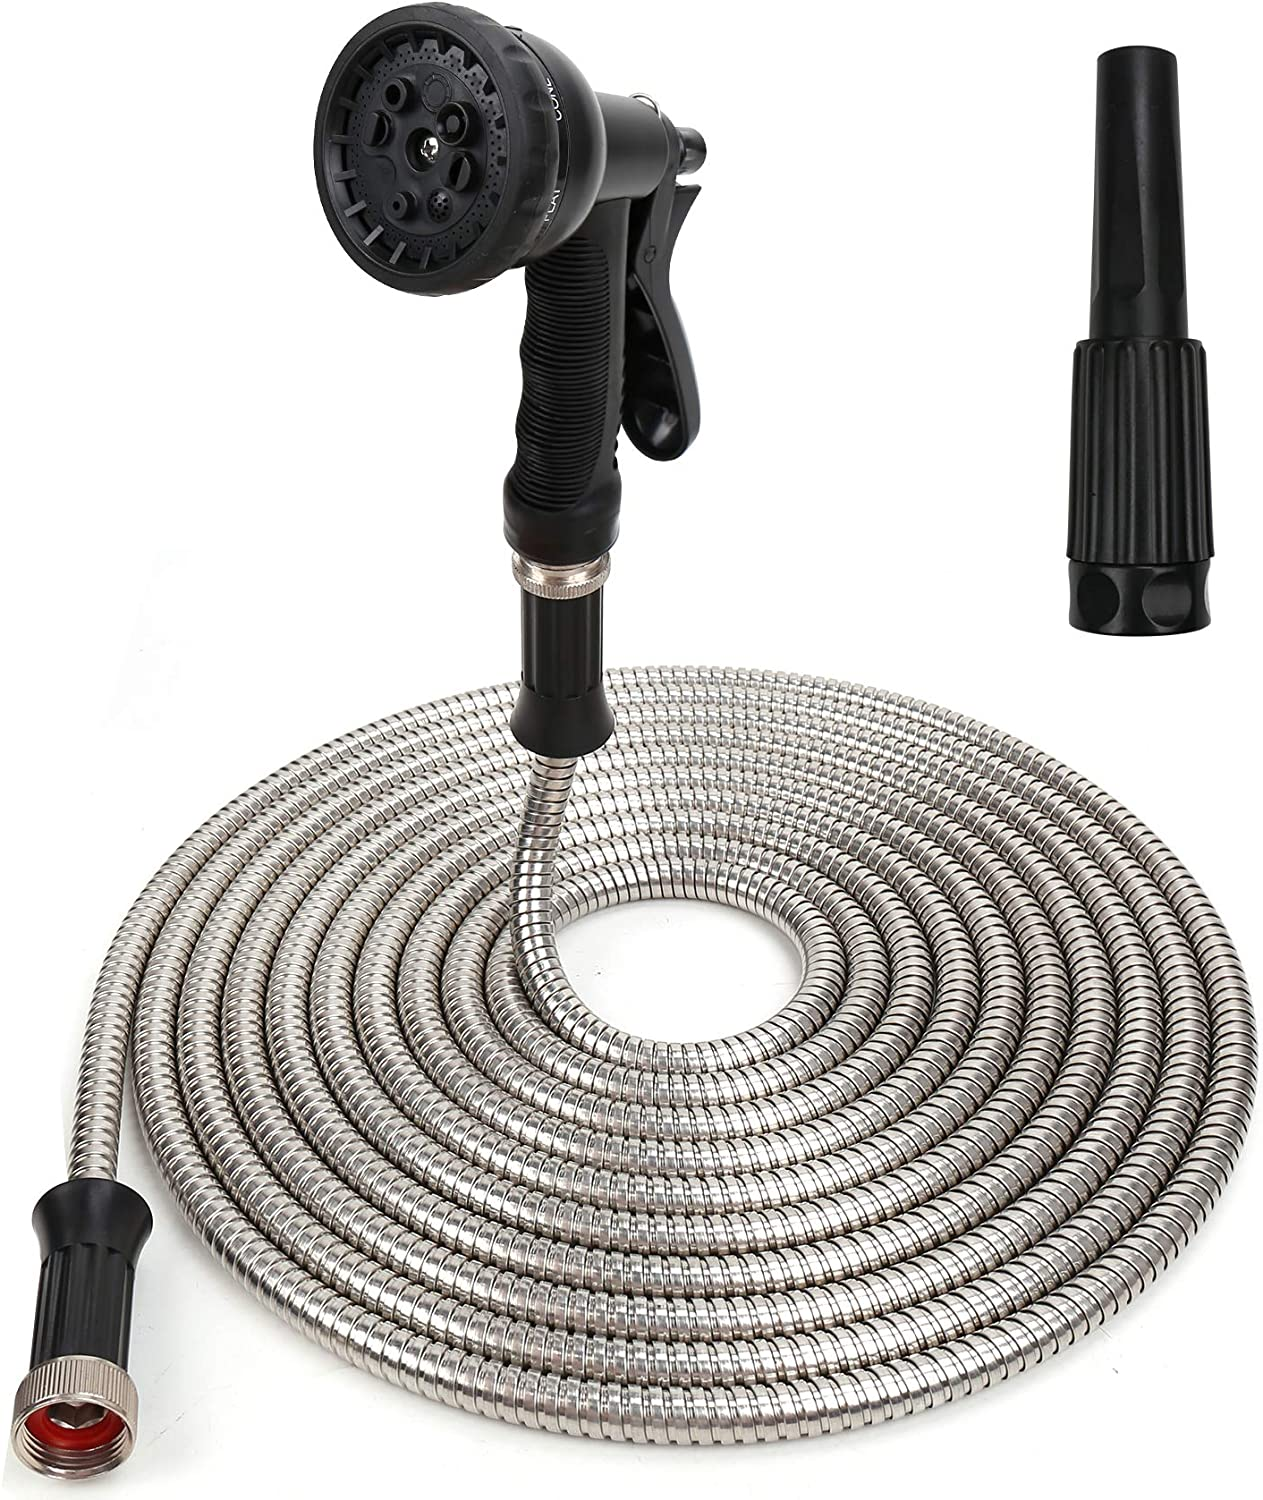 MultiOutools 304 Stainless Steel Garden Hose 25FT Metal Water Hose with 2 Free Nozzles Heavy Duty Flexible Metal Garden Hose 8 Functions Spray Nozzle Lightweight Durable Kink Free Outdoor Hose